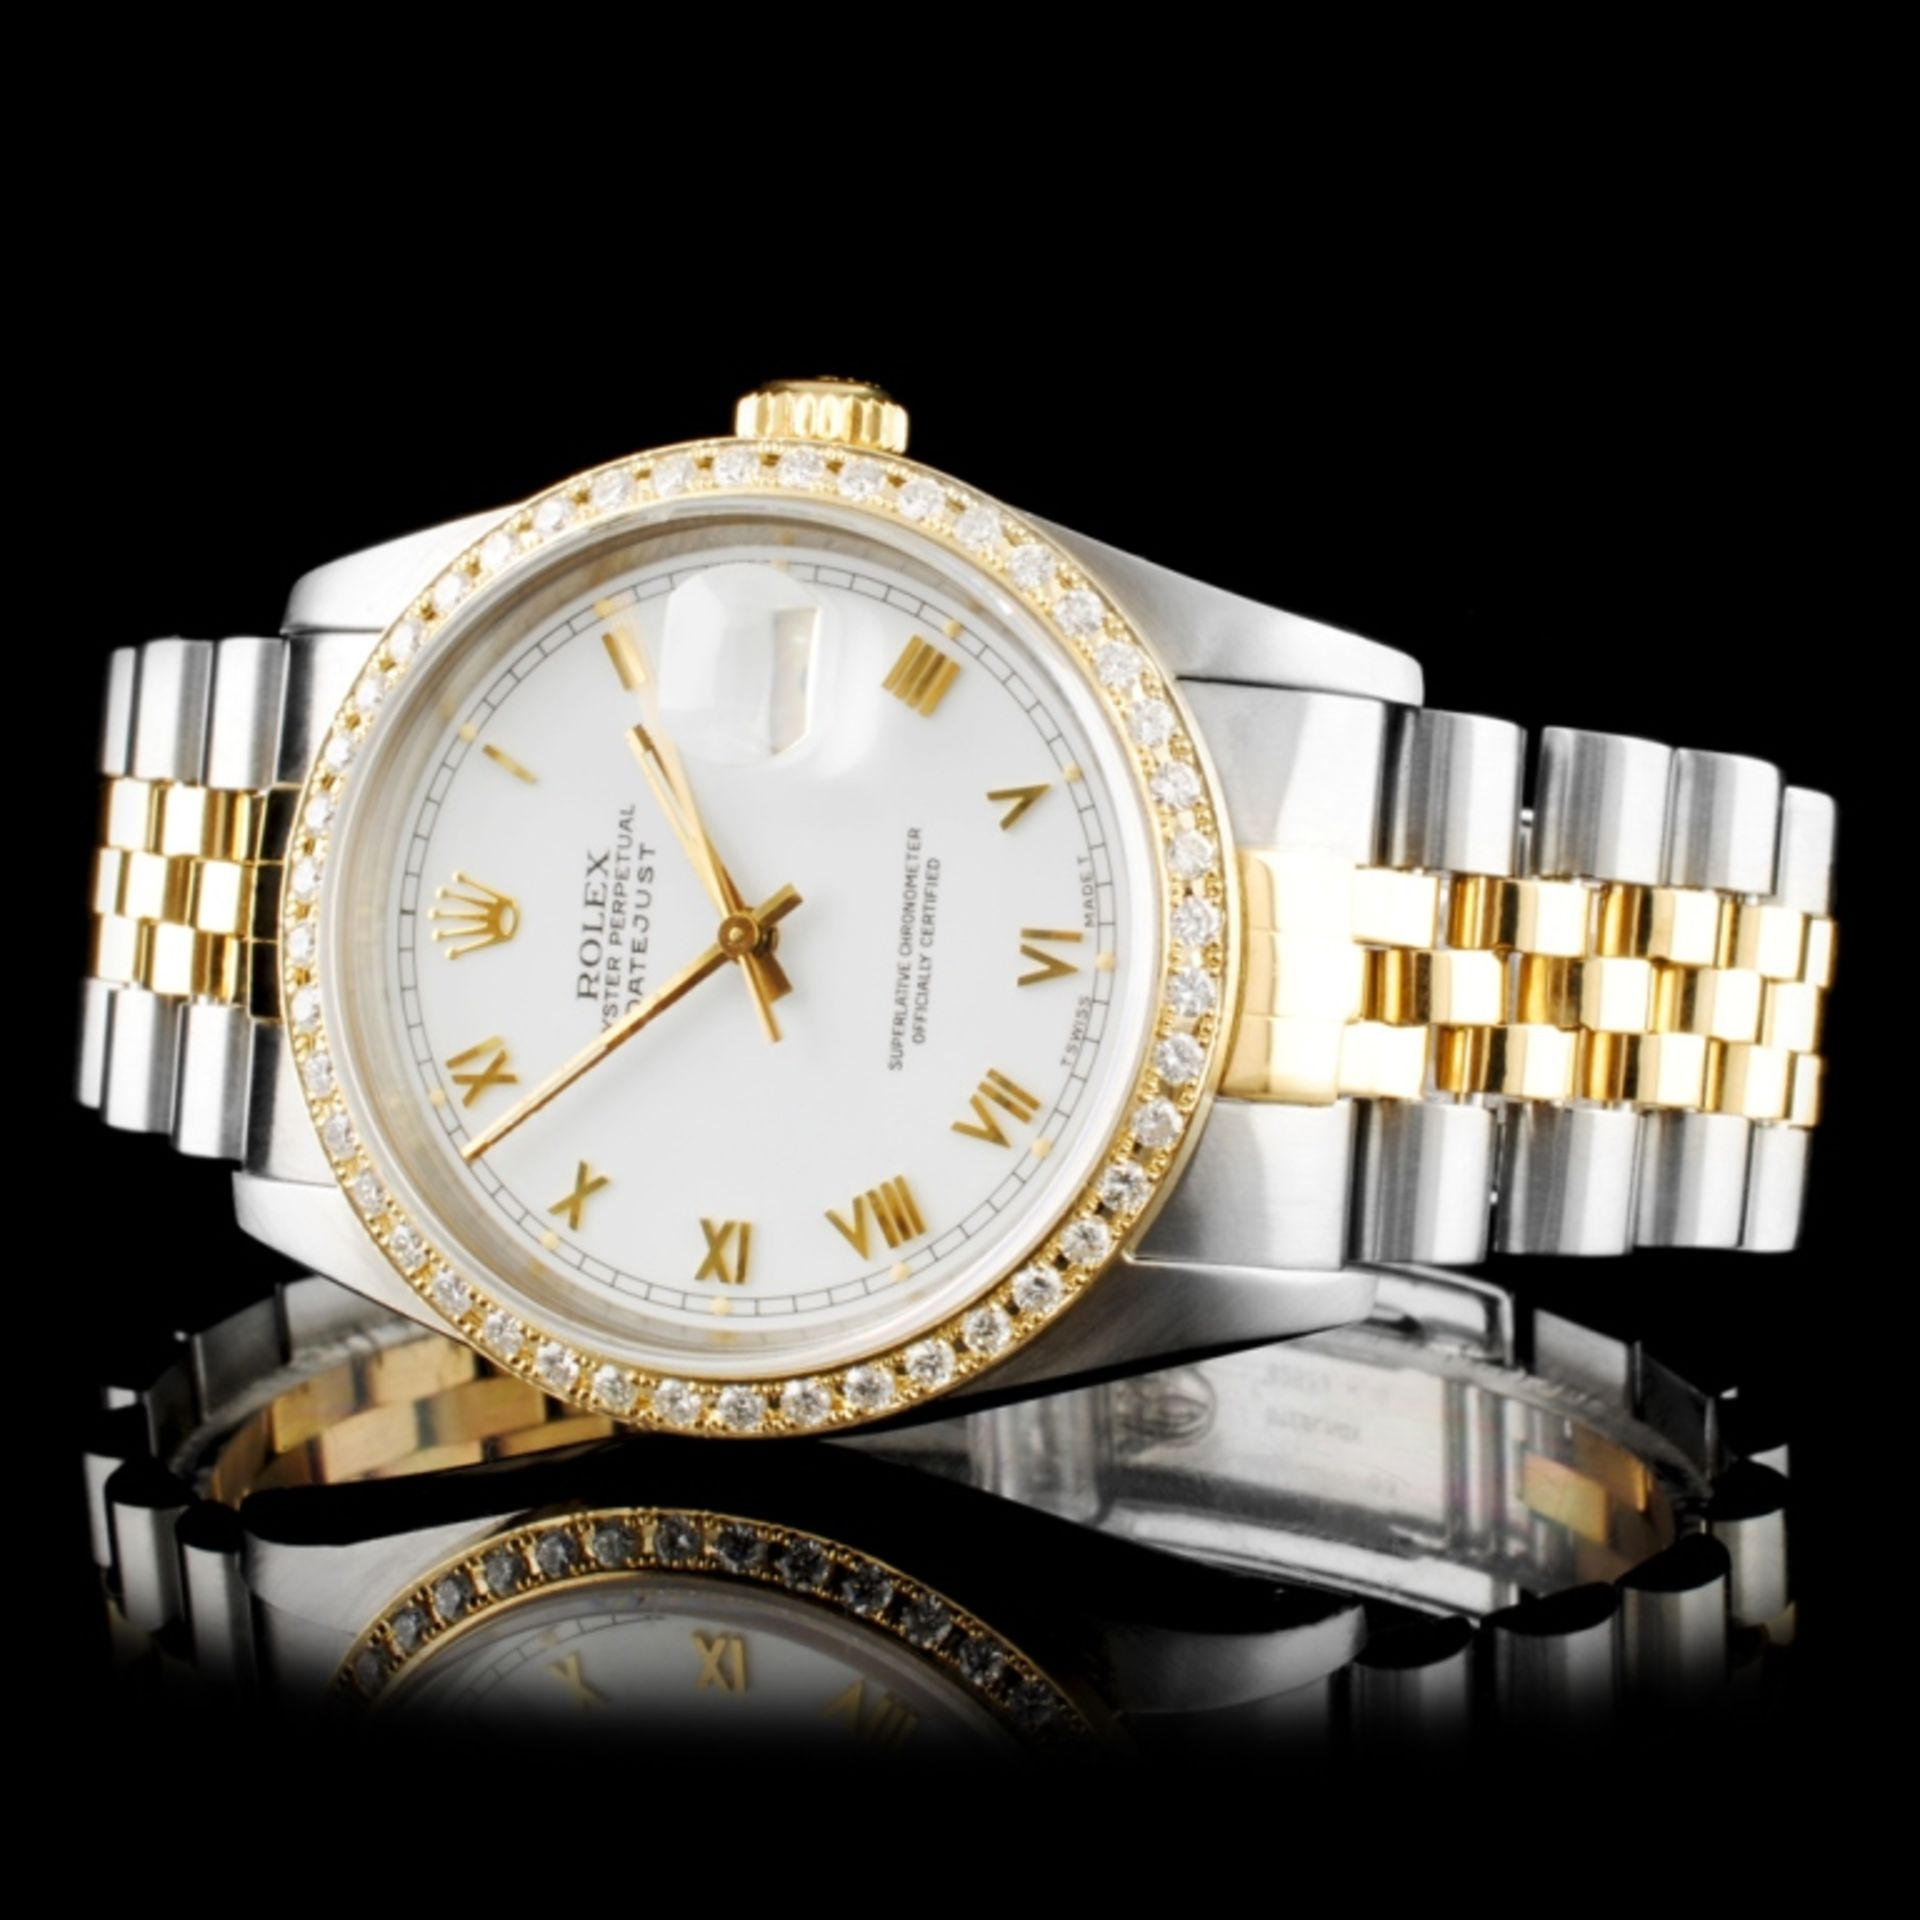 Rolex DateJust Diamond 36MM Wristwatch - Image 2 of 6